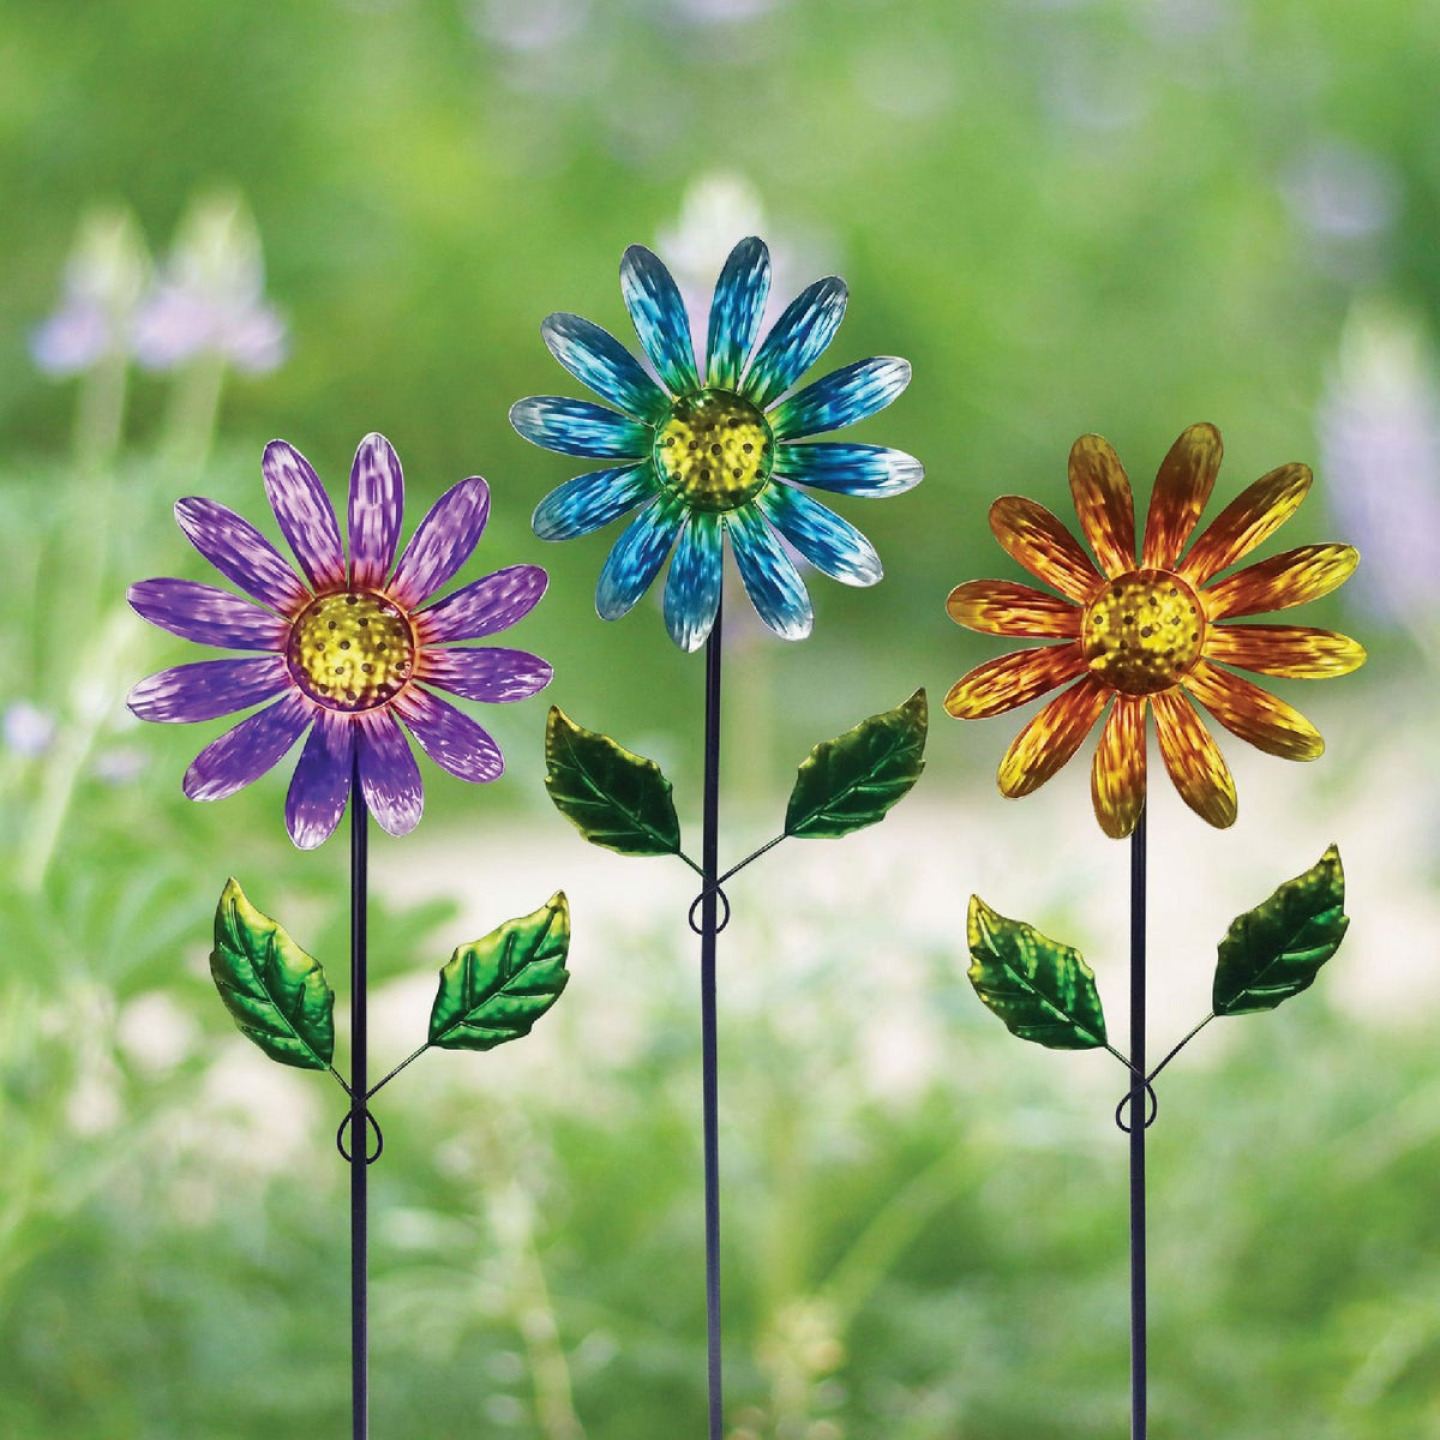 Alpine 32 In. Metal Daisy Garden Stake Lawn Ornament Image 2